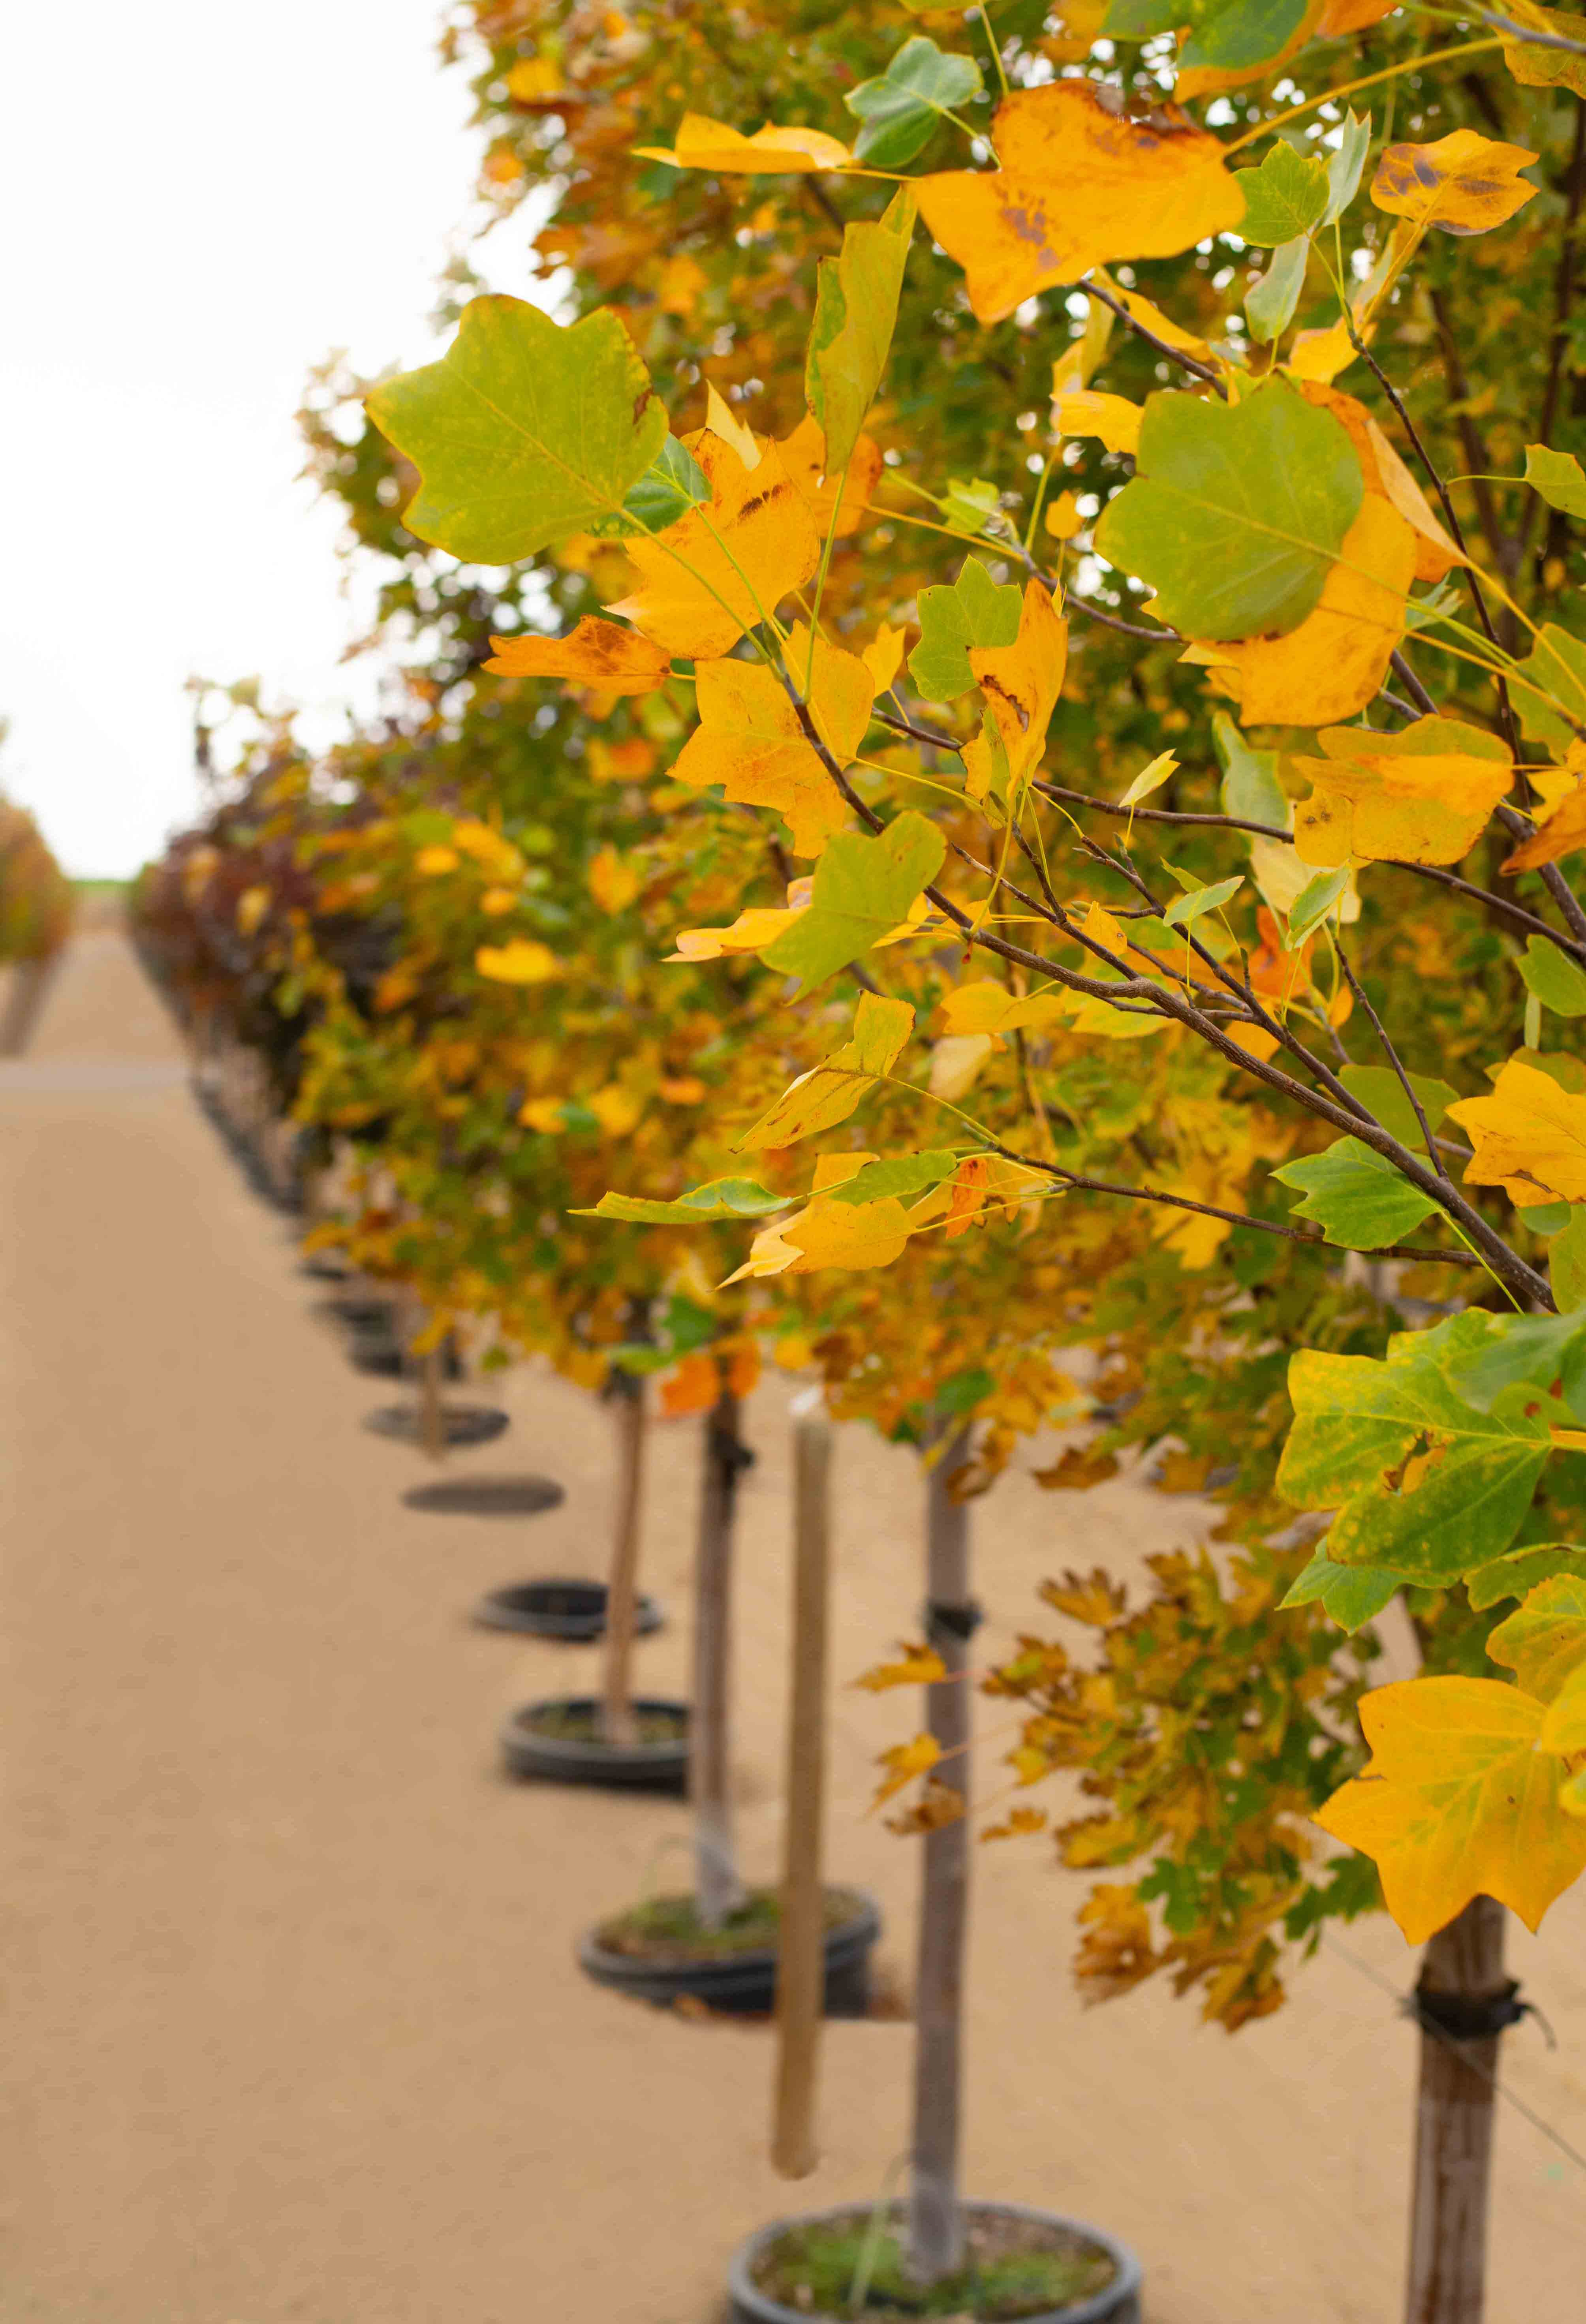 Why Fall is a Great Time to Plant Trees